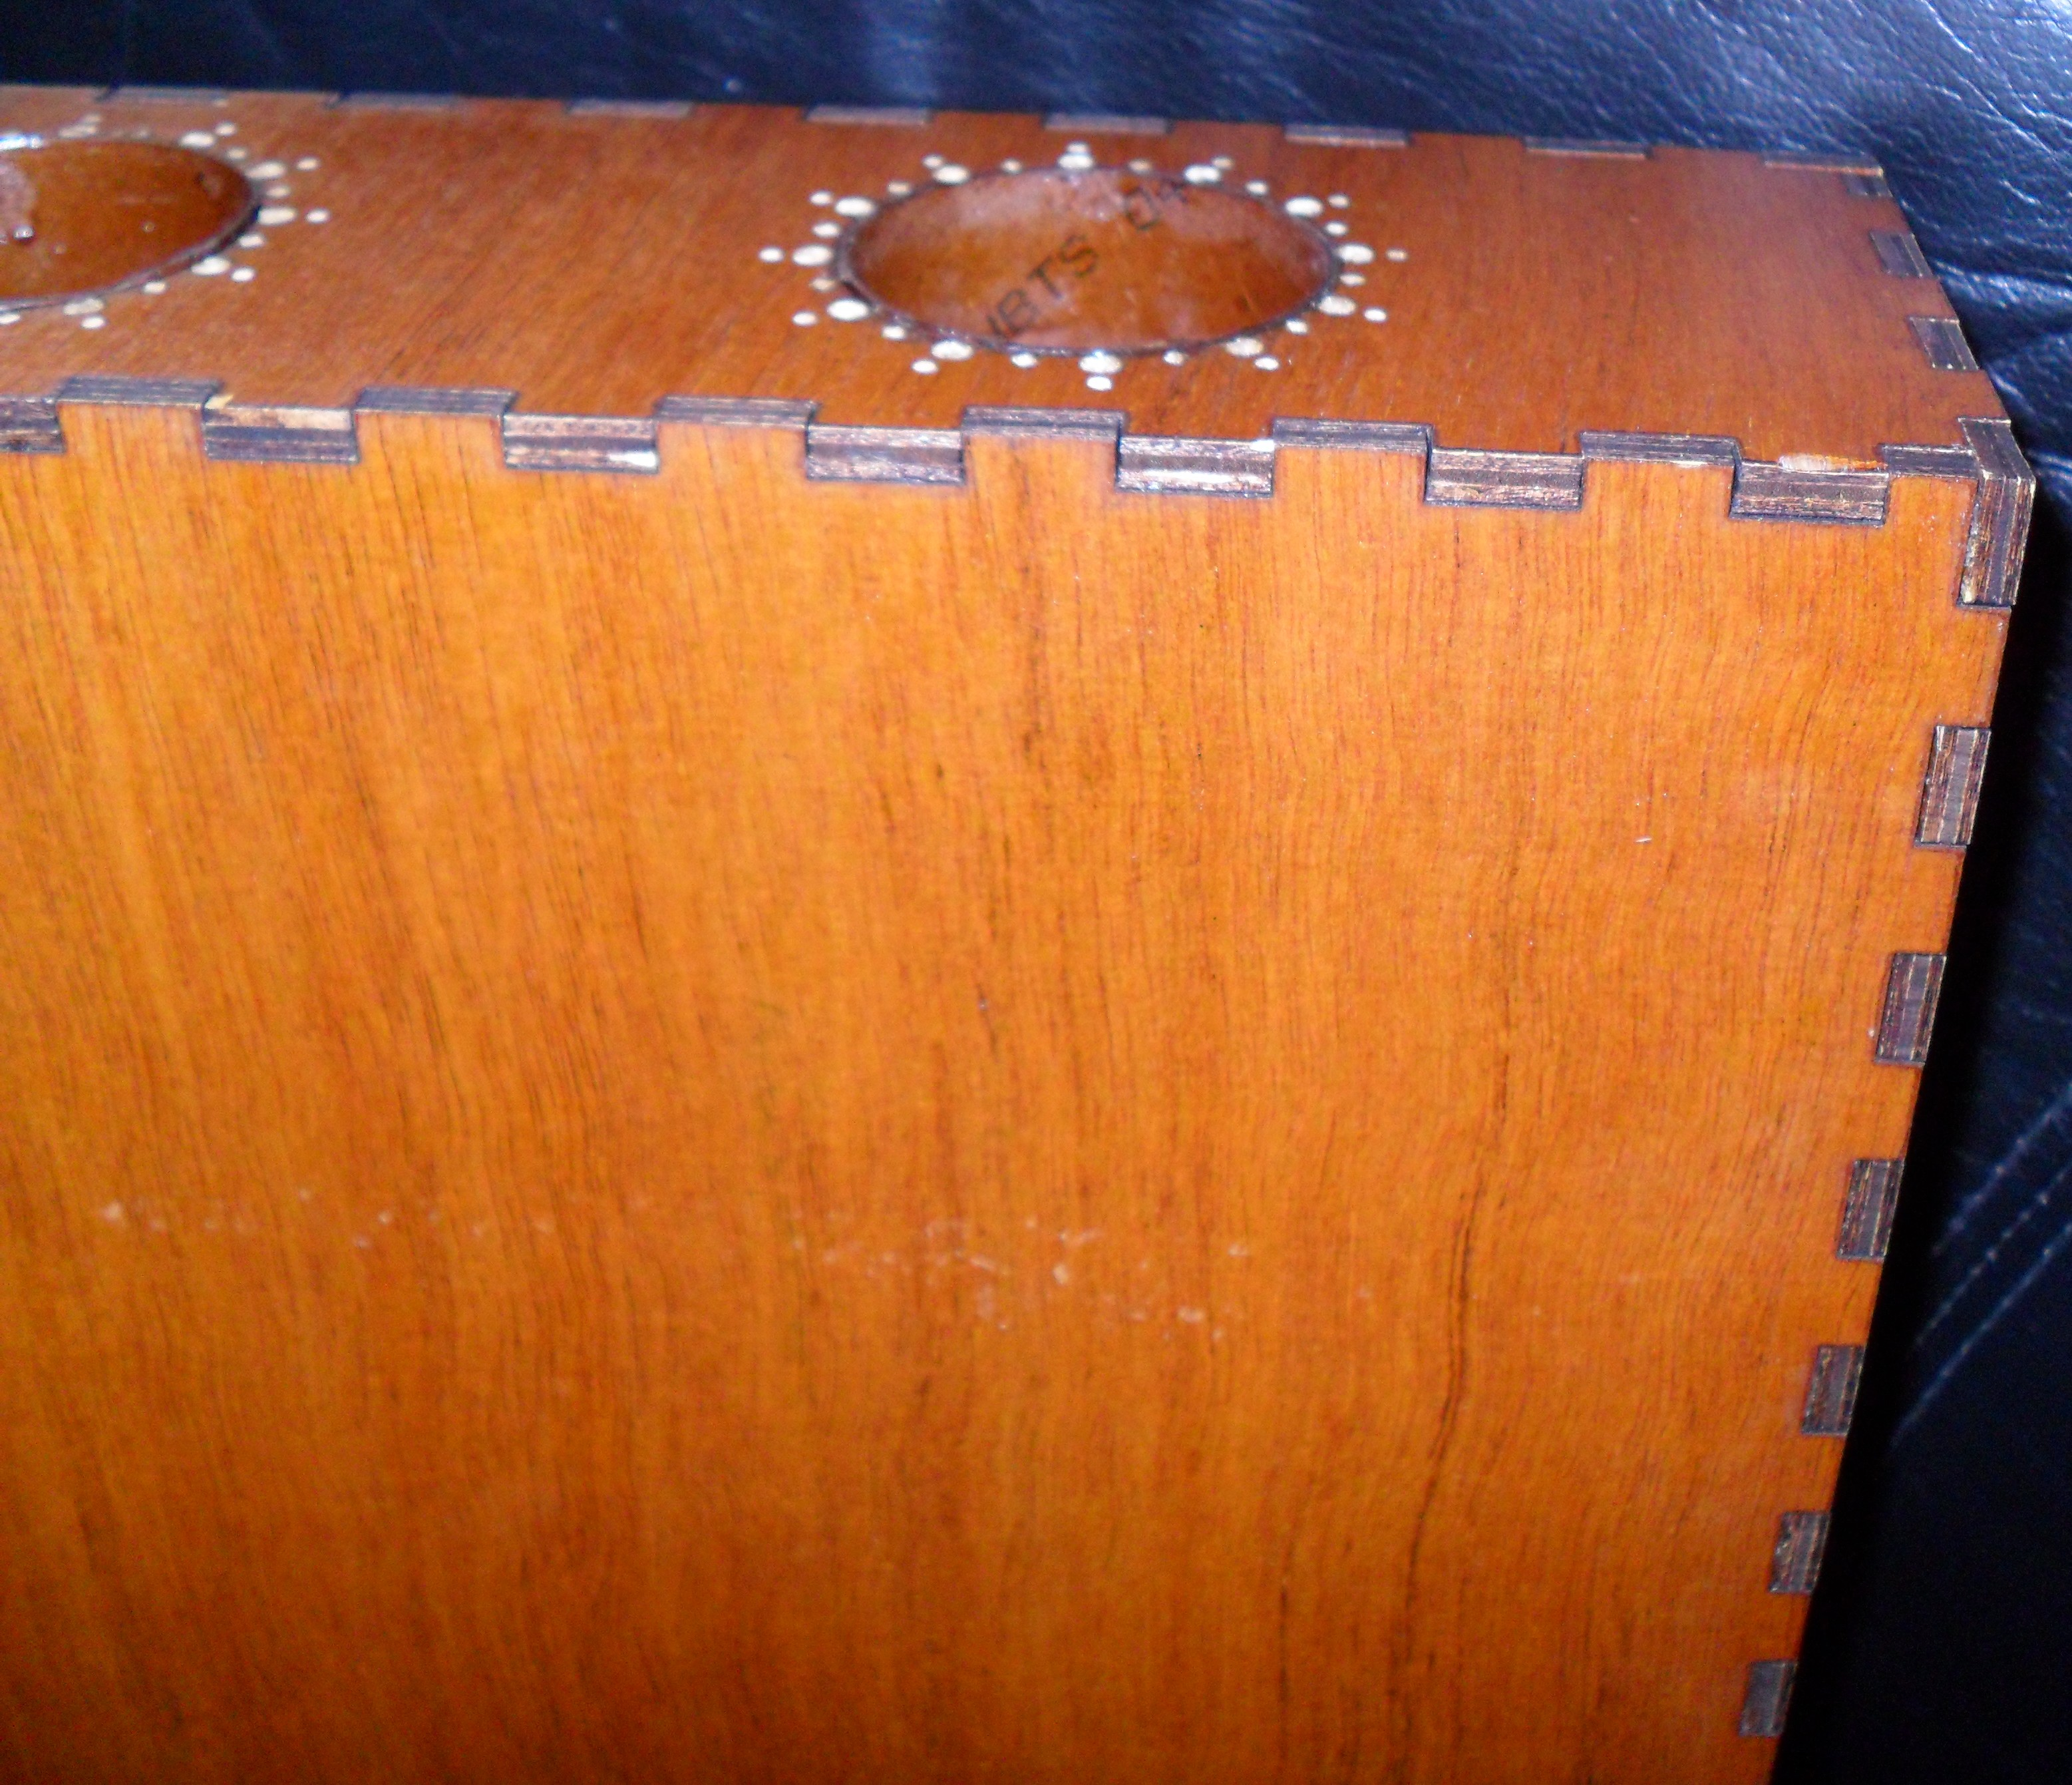 Acoustic-Electric Wooden StompBox with Piezo PickUp